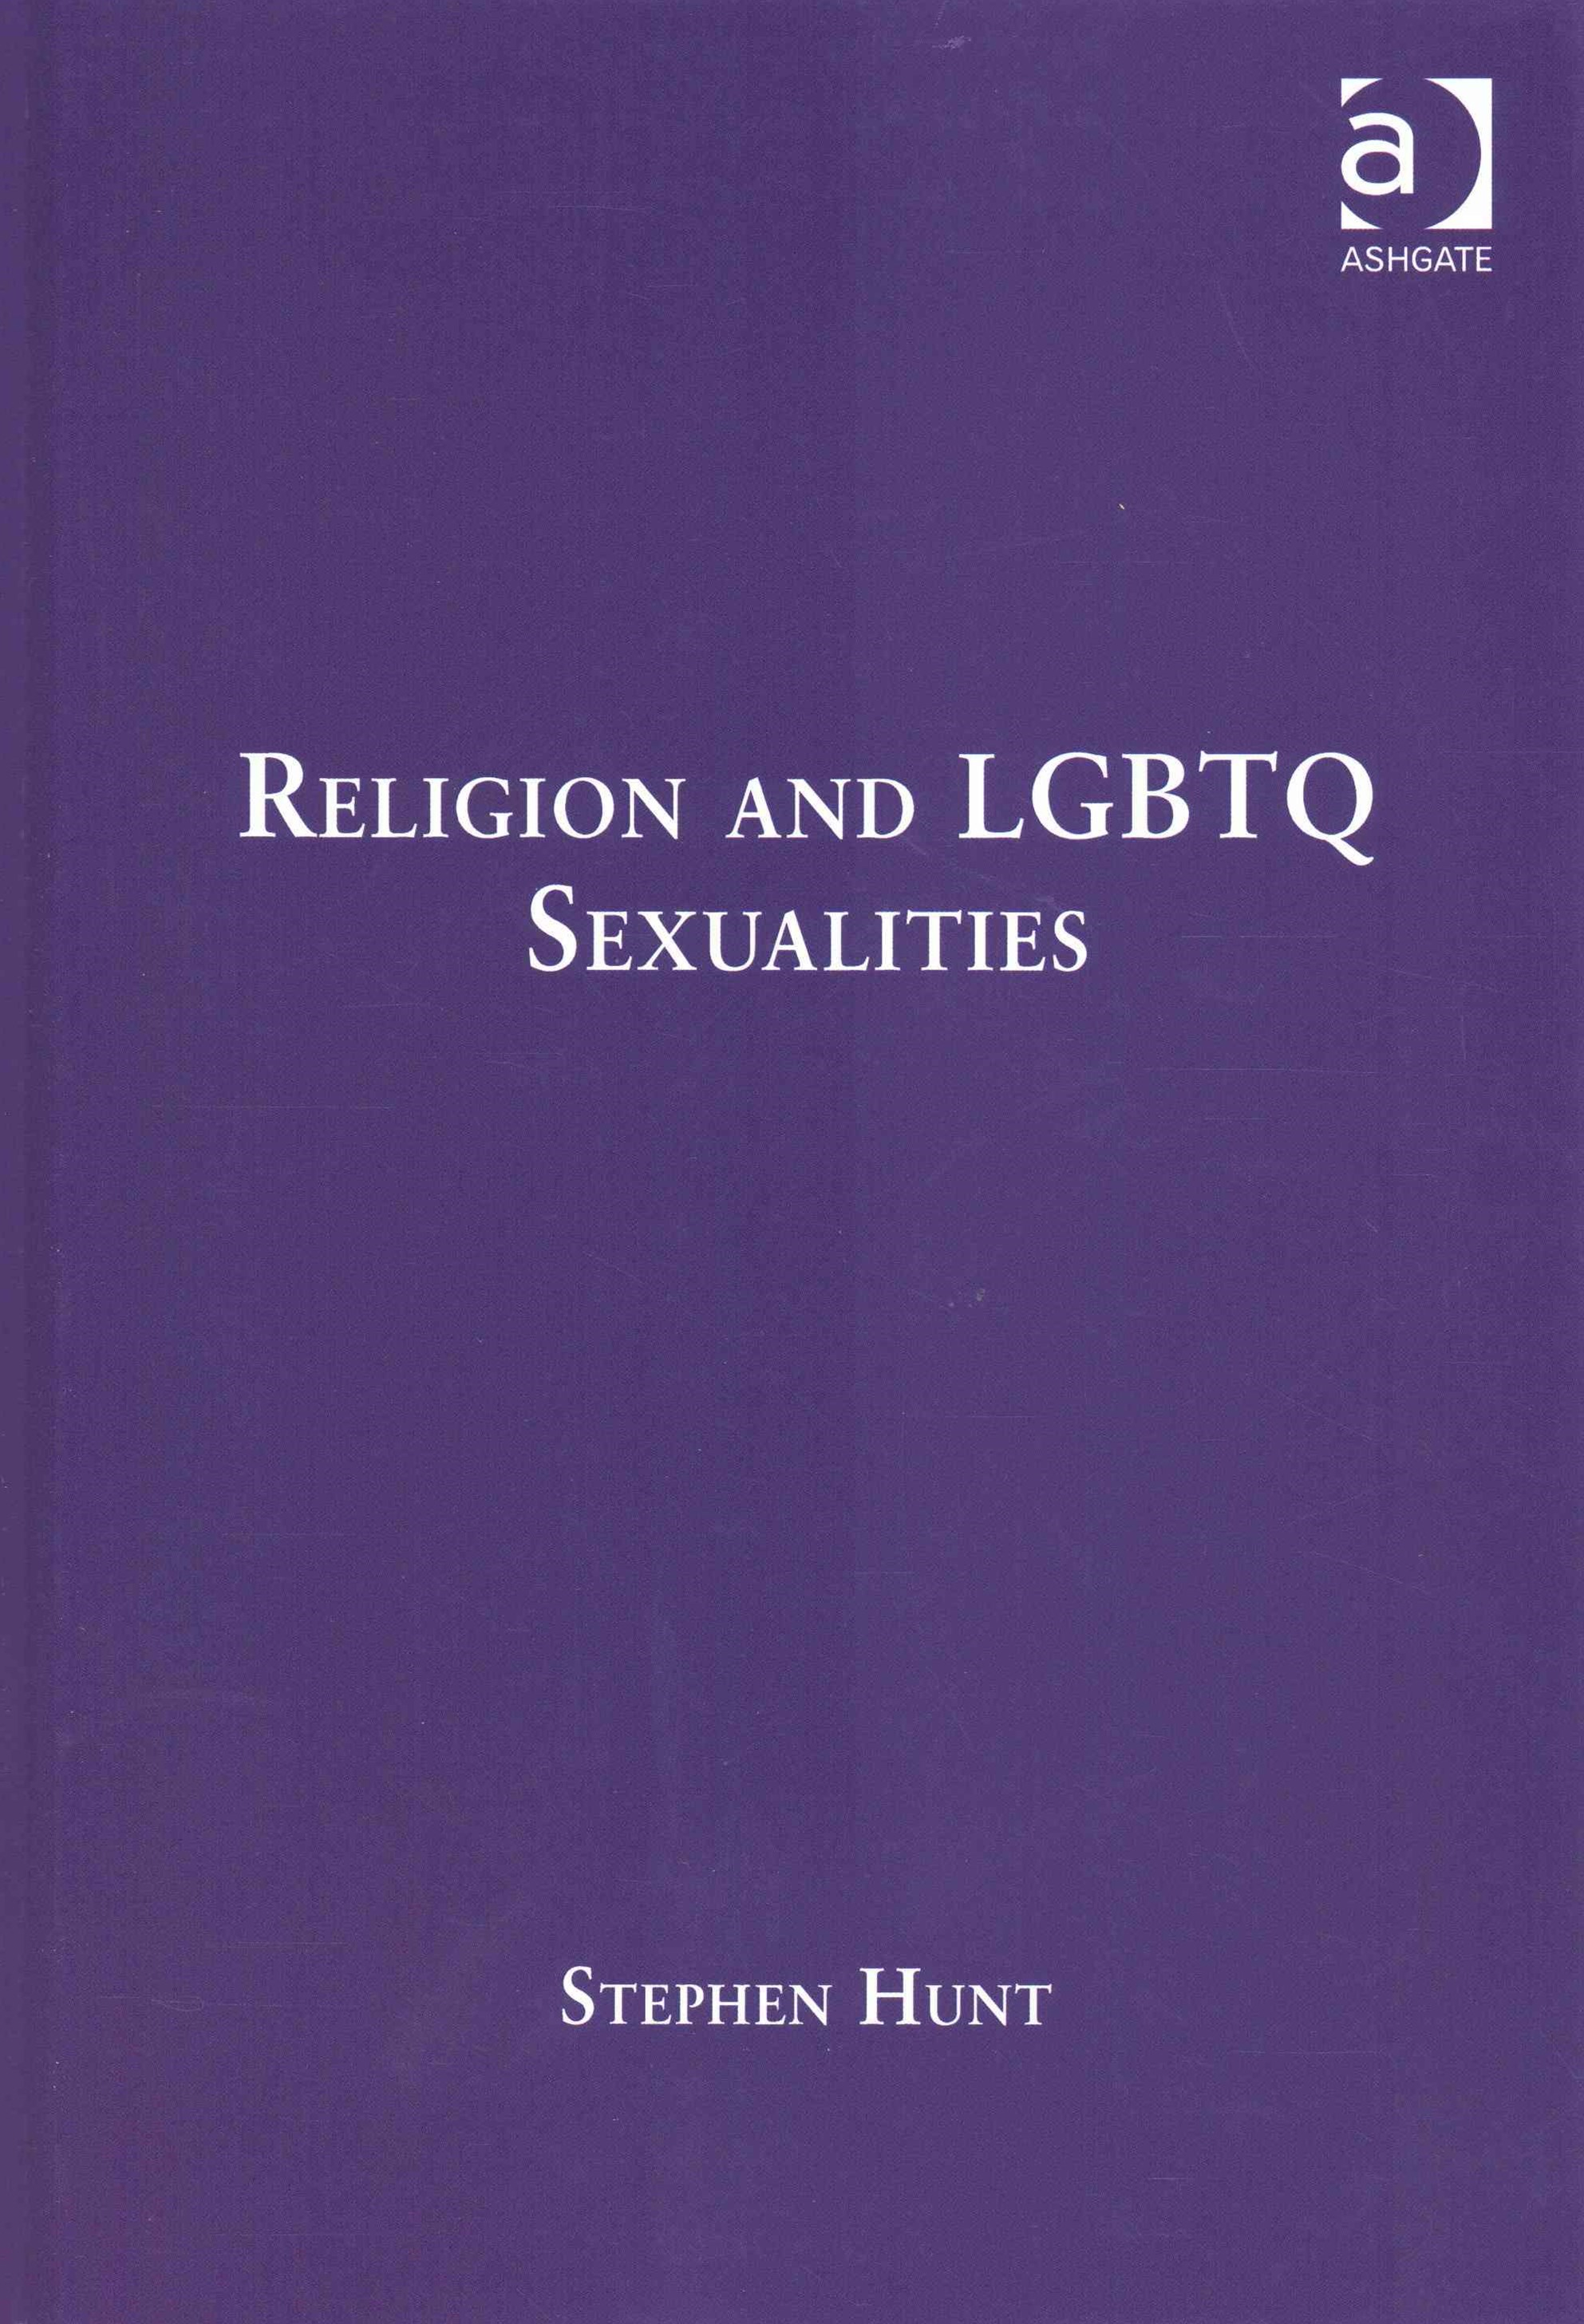 Religion and LGBTQ Sexualities